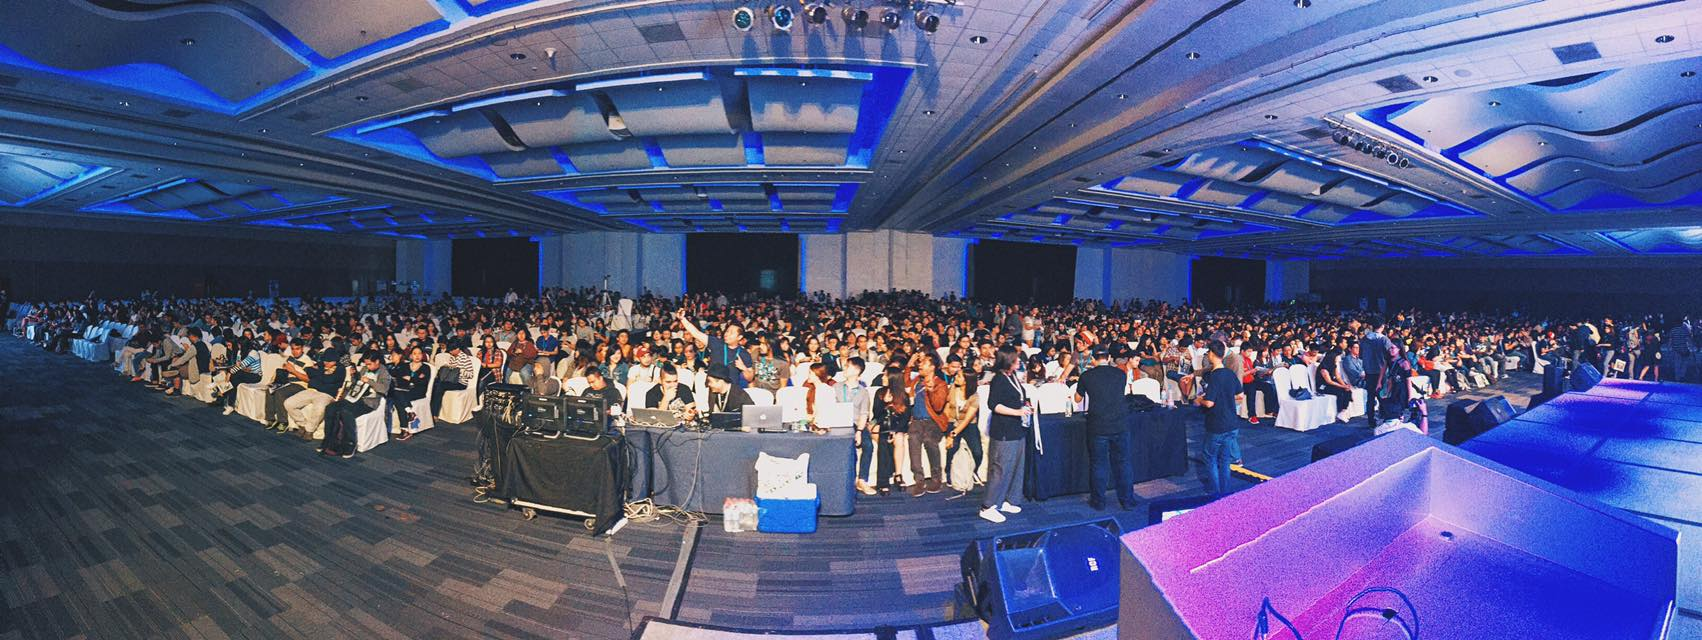 Spoke in front of 4,000 hungry creative minds. It was one of the most rewarding experiences of my creative career.